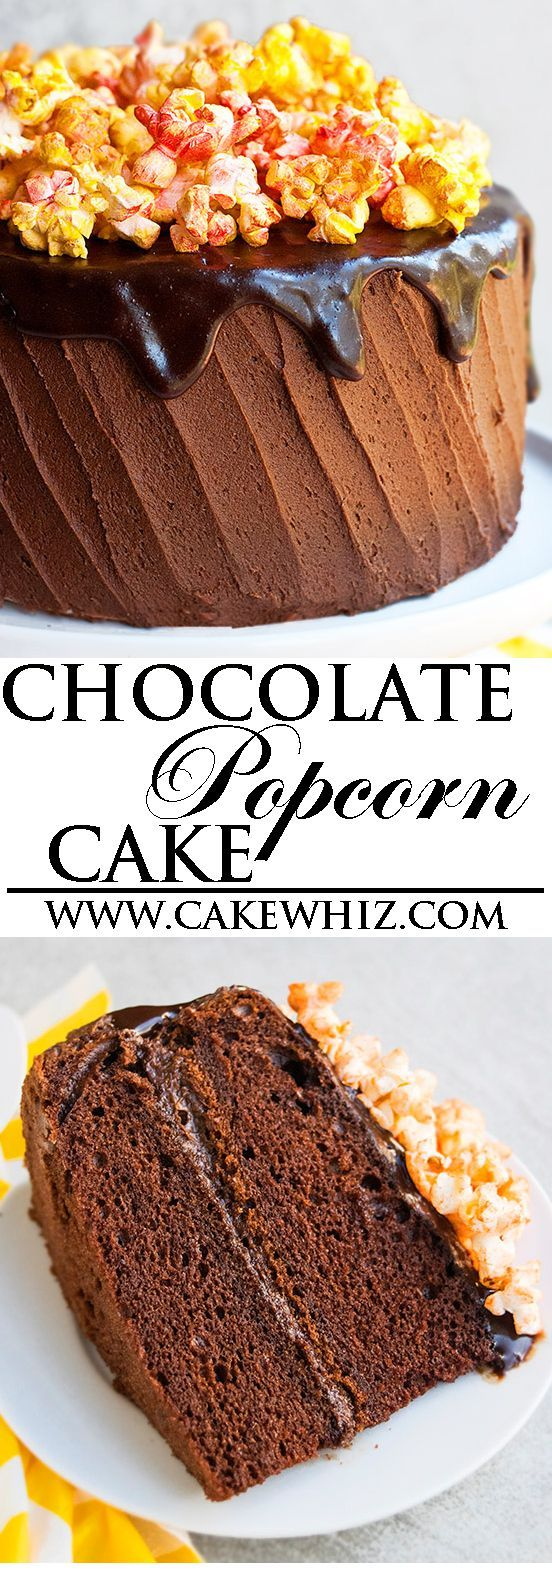 This decadent CHOCOLATE POPCORN CAKE with chocolate buttercream frosting and chocolate ganache is great for birthday parties! It's an easy cake recipe, using simple ingredients. From http://cakewhiz.com